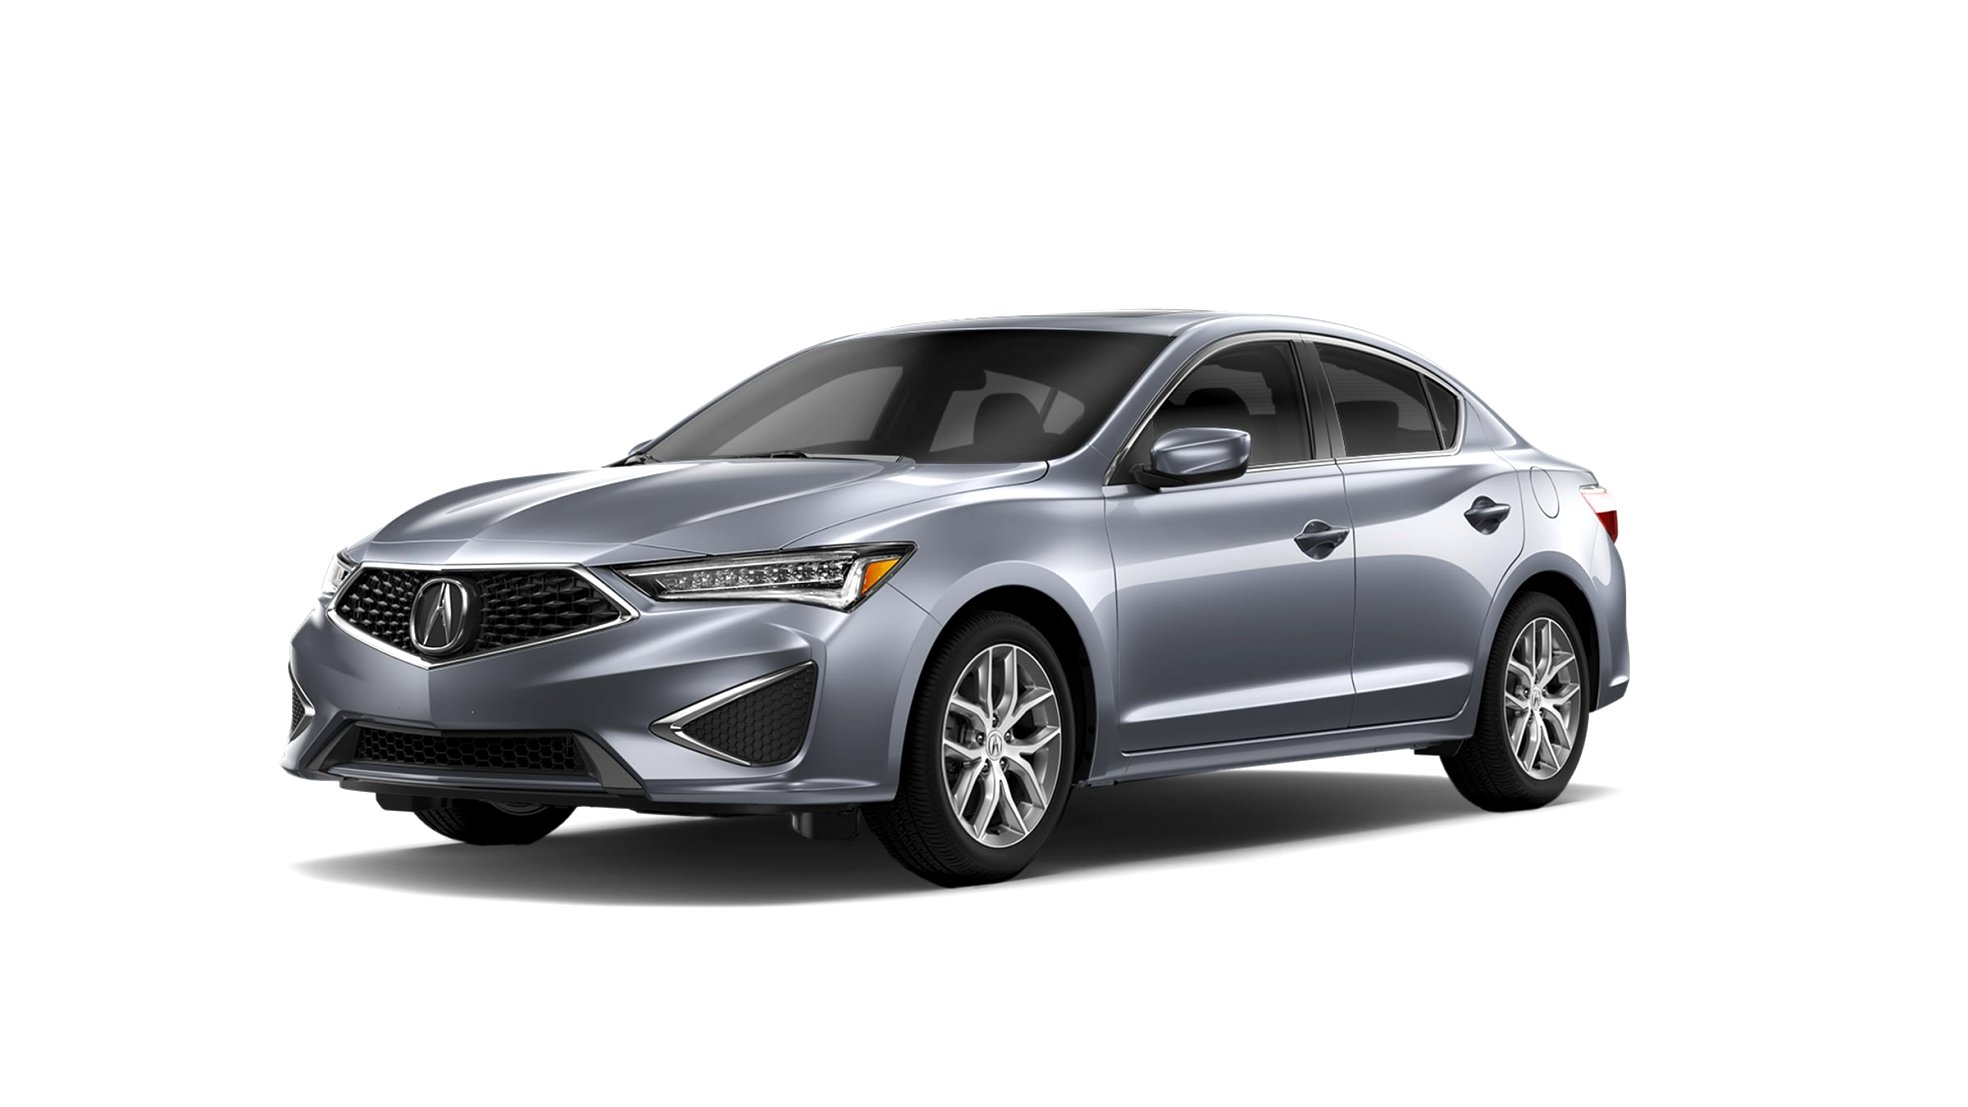 acura black friday deals 2020 Reviews